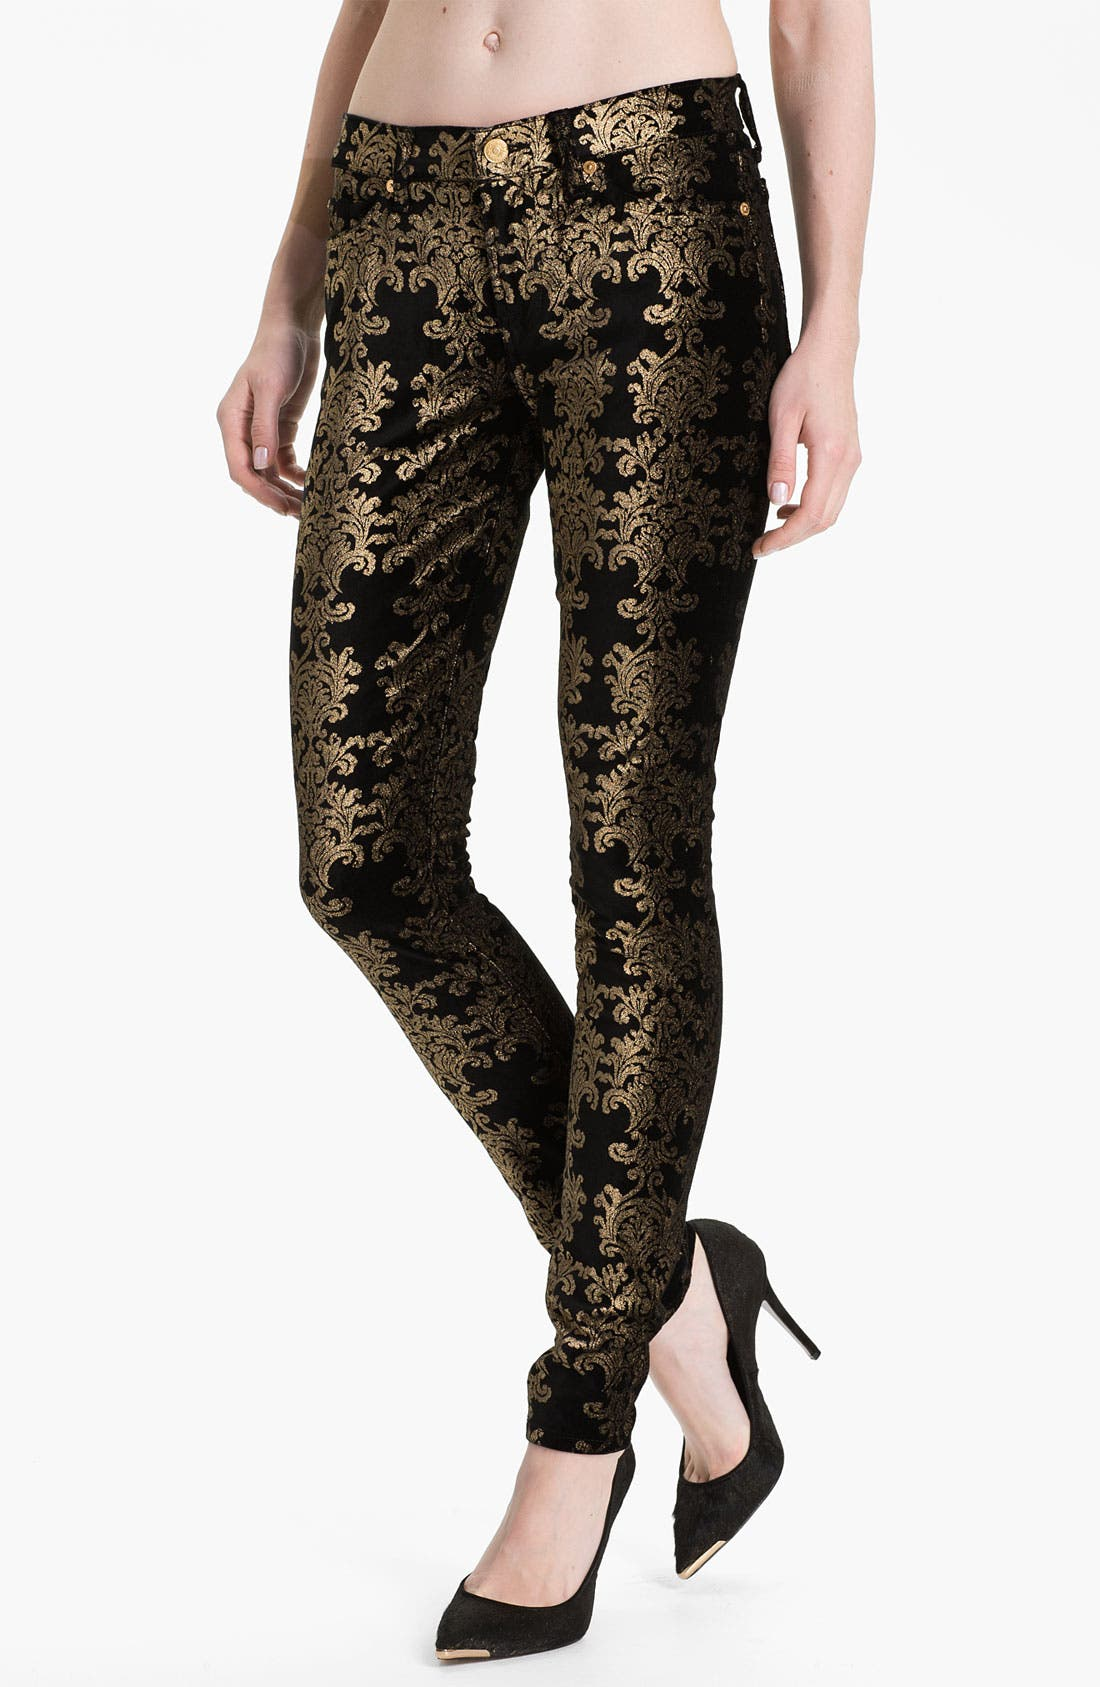 Alternate Image 1 Selected - 7 For All Mankind® 'The Skinny' Foil Print Jeans (Black/Gold Foil)